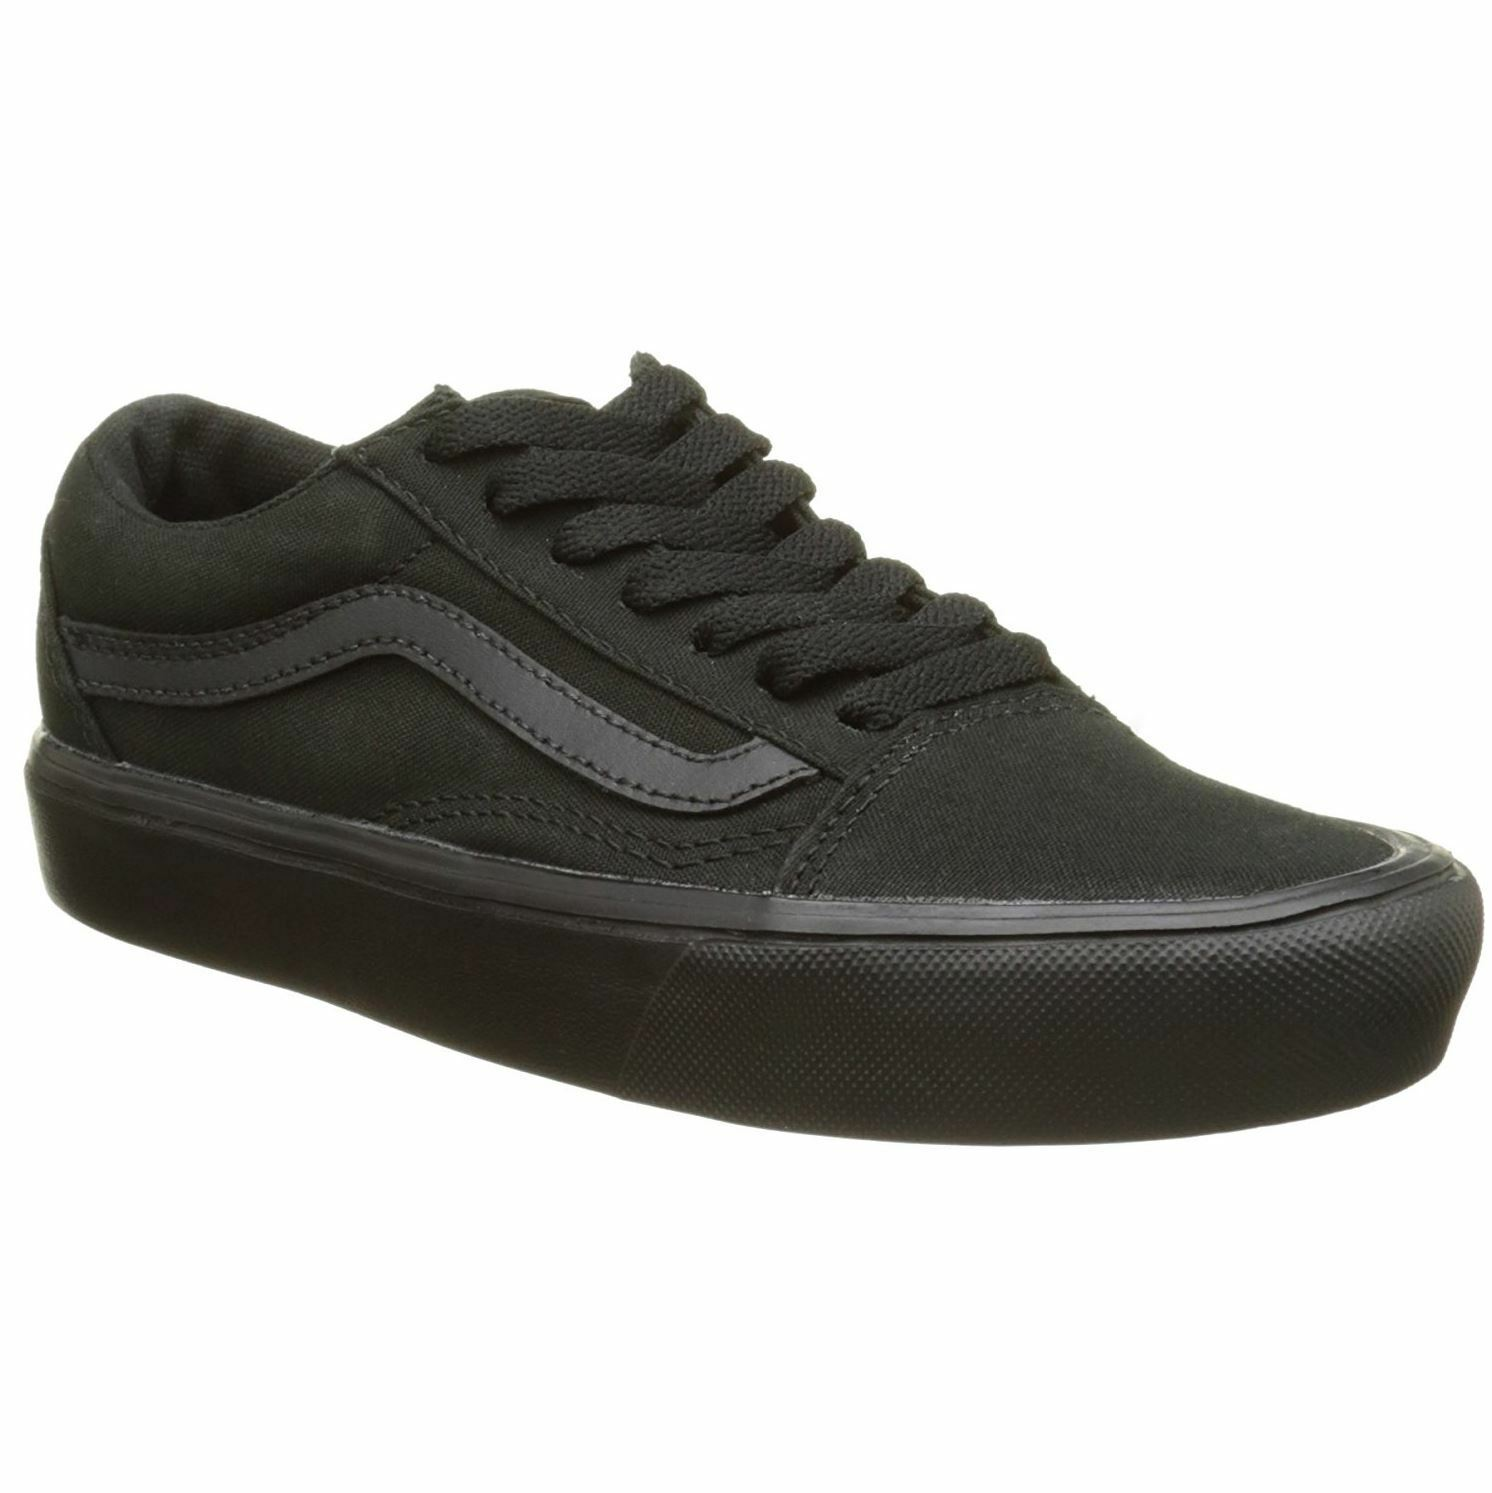 Vans Old Skool Lite Nero Uomo Canvas Low-top Lace-up Lace-up Lace-up Trainers 236a31